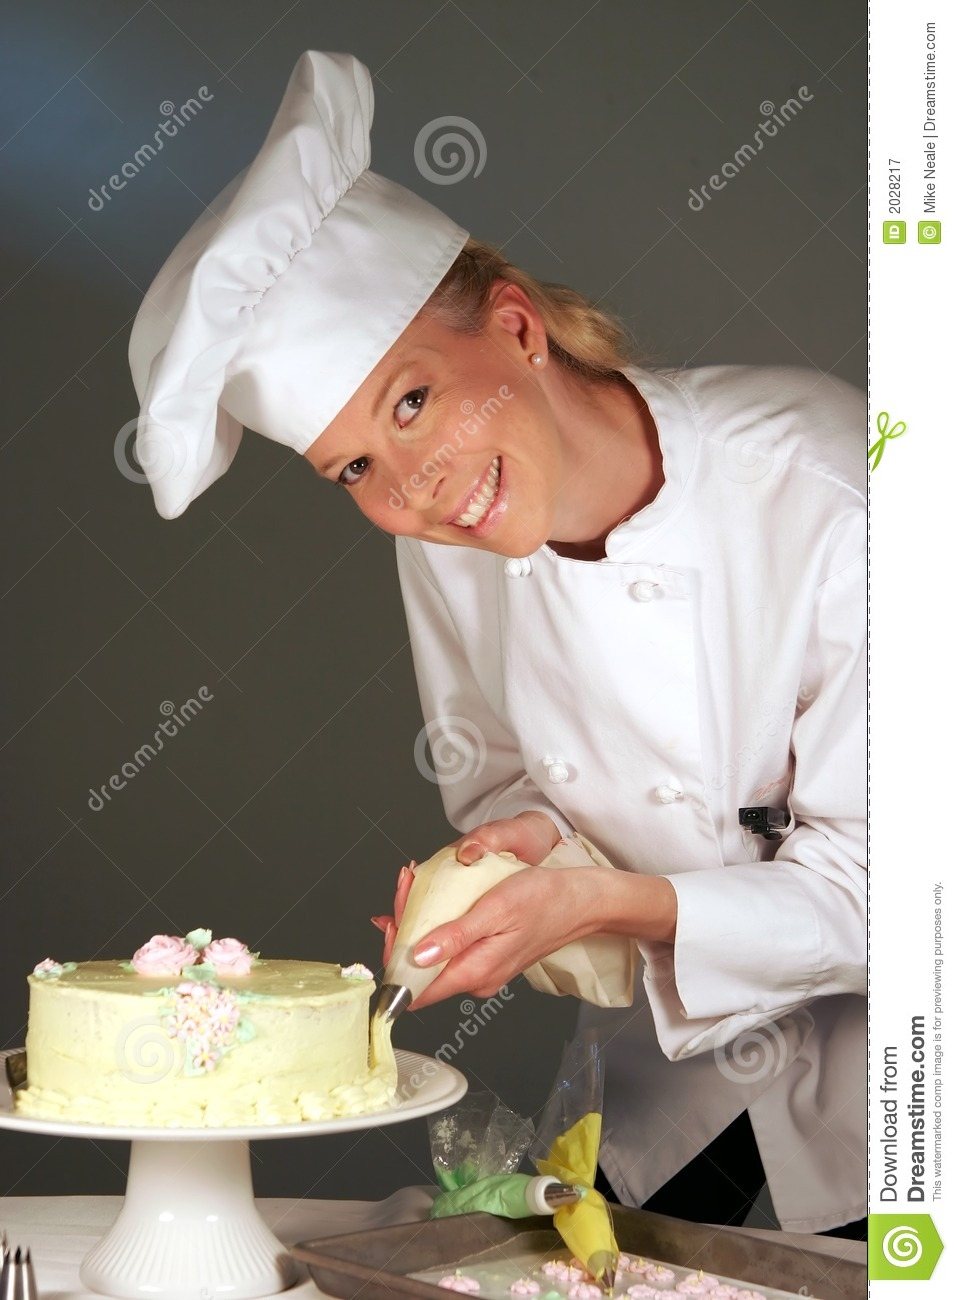 Cake Pastry Chef Royalty Free Stock Photography Image